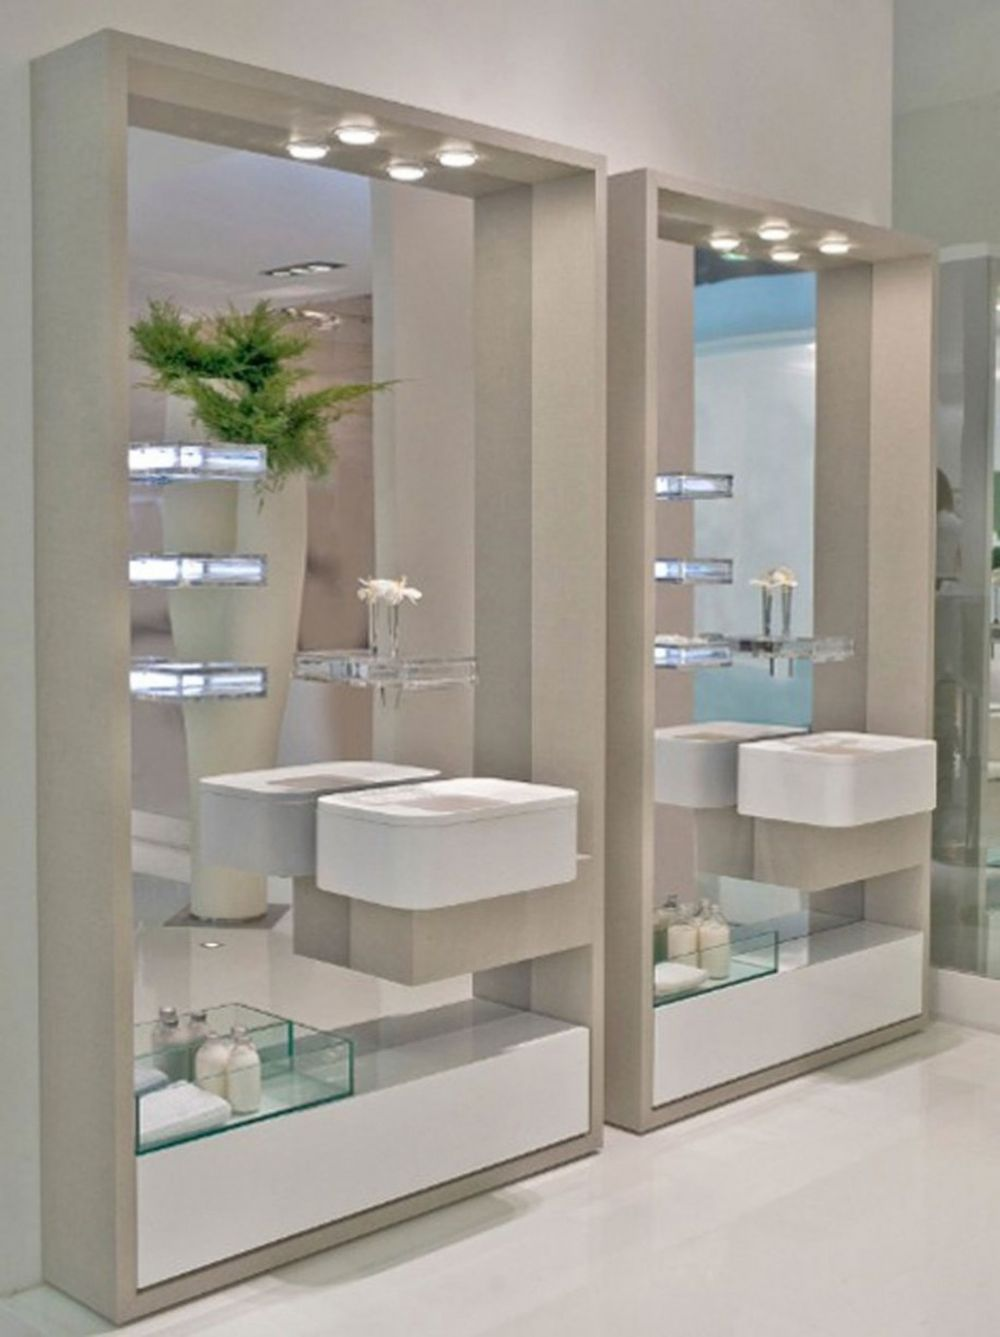 luminous glass shelves on frameless built-in mirrors with white trough sink cabinets and powder room